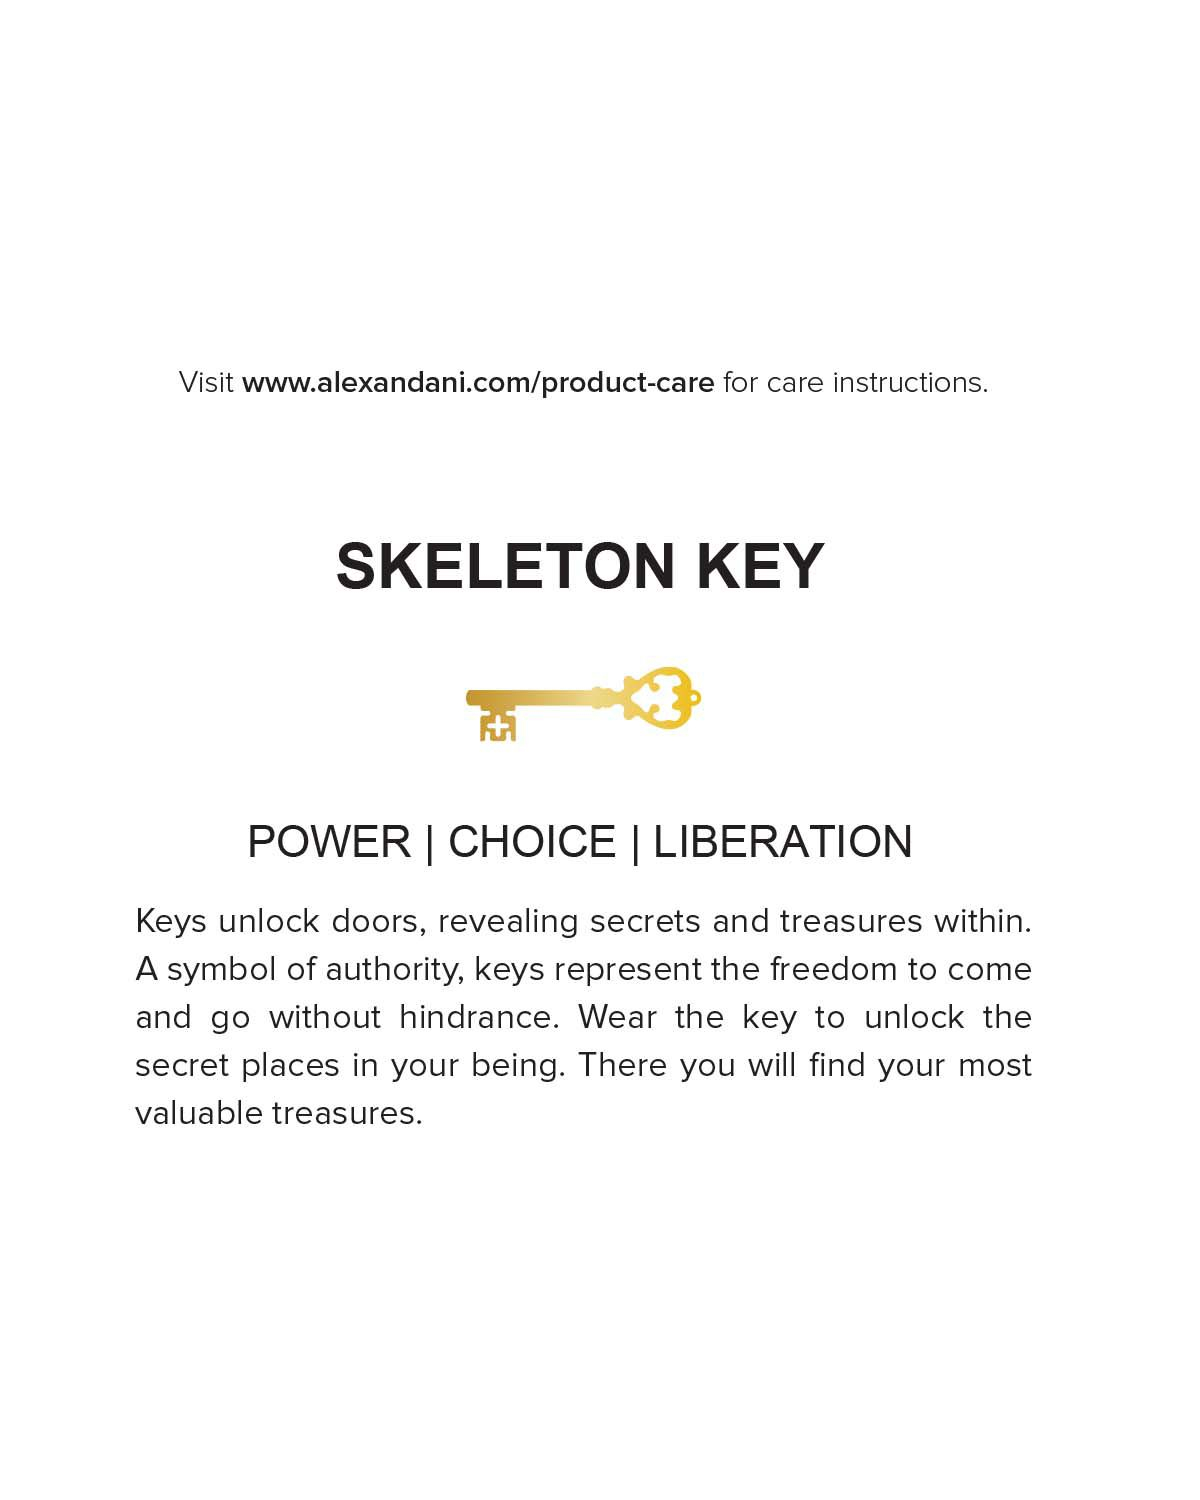 Lyst alex and ani precious metals symbolic skeleton key earrings gallery buycottarizona Choice Image